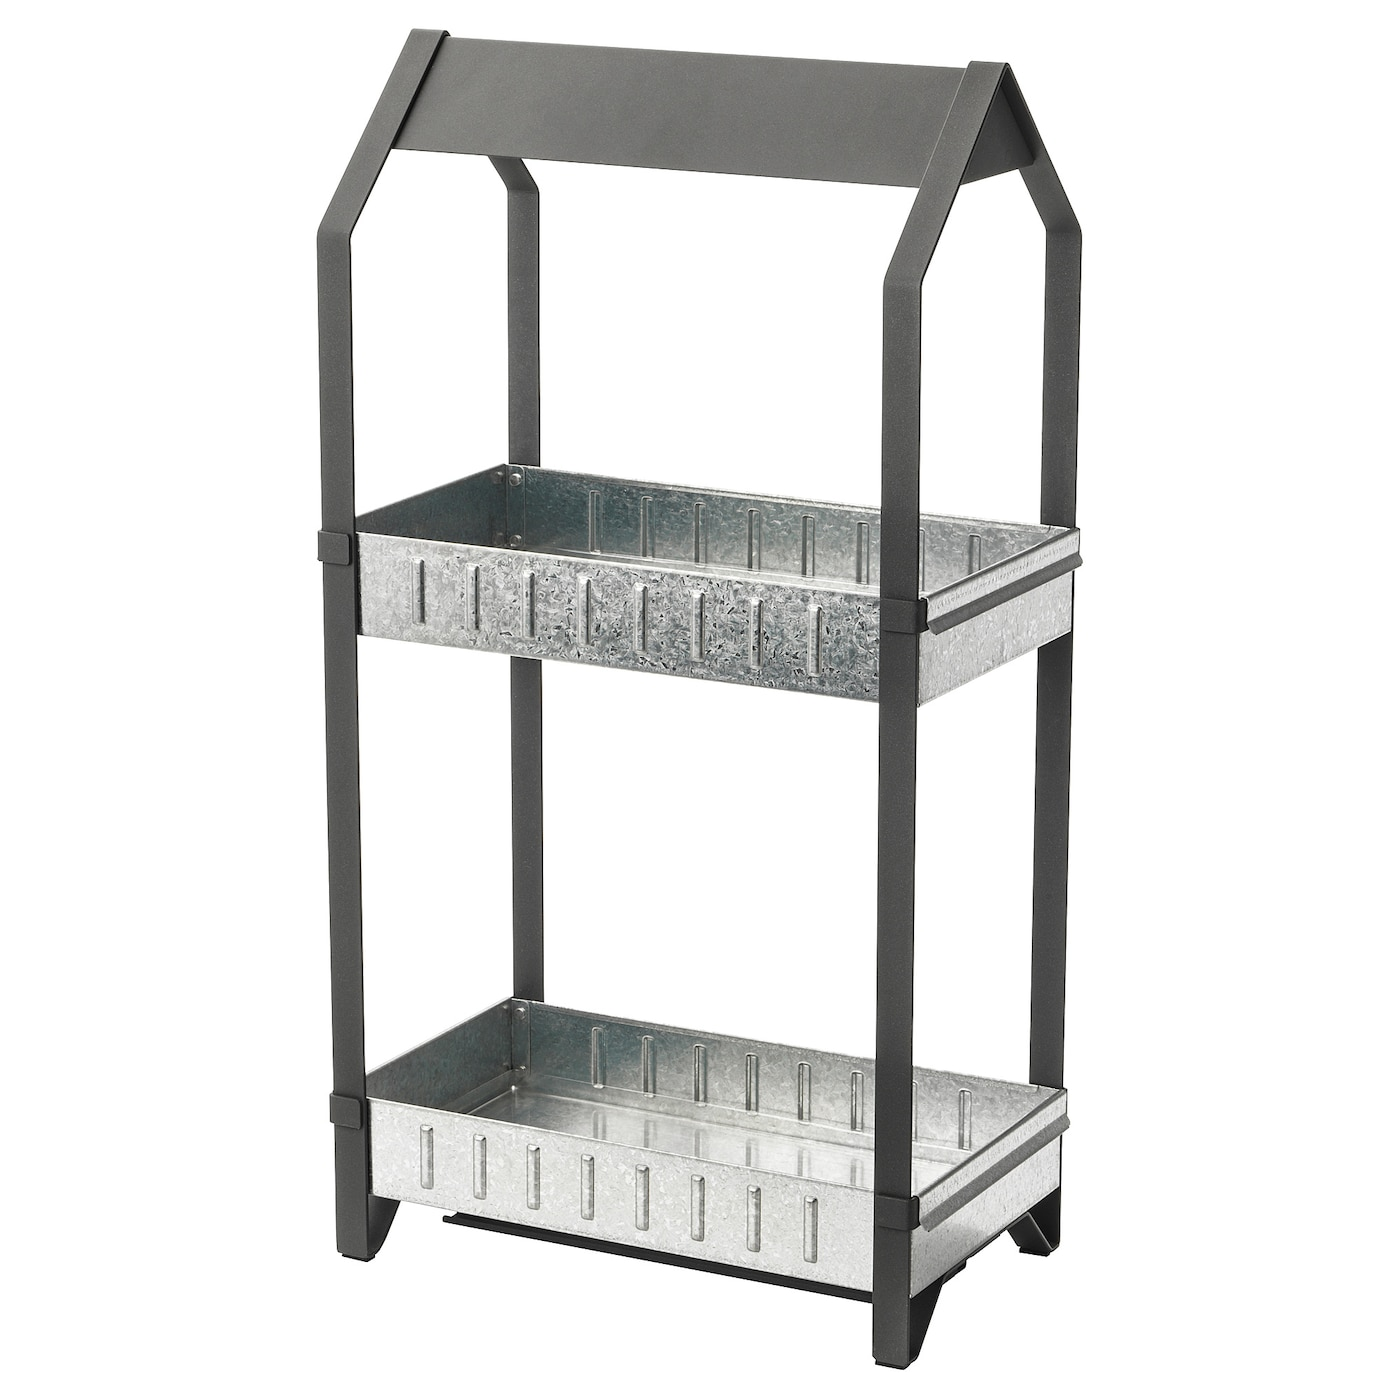 IKEA KRYDDA 2-tier cultivation unit